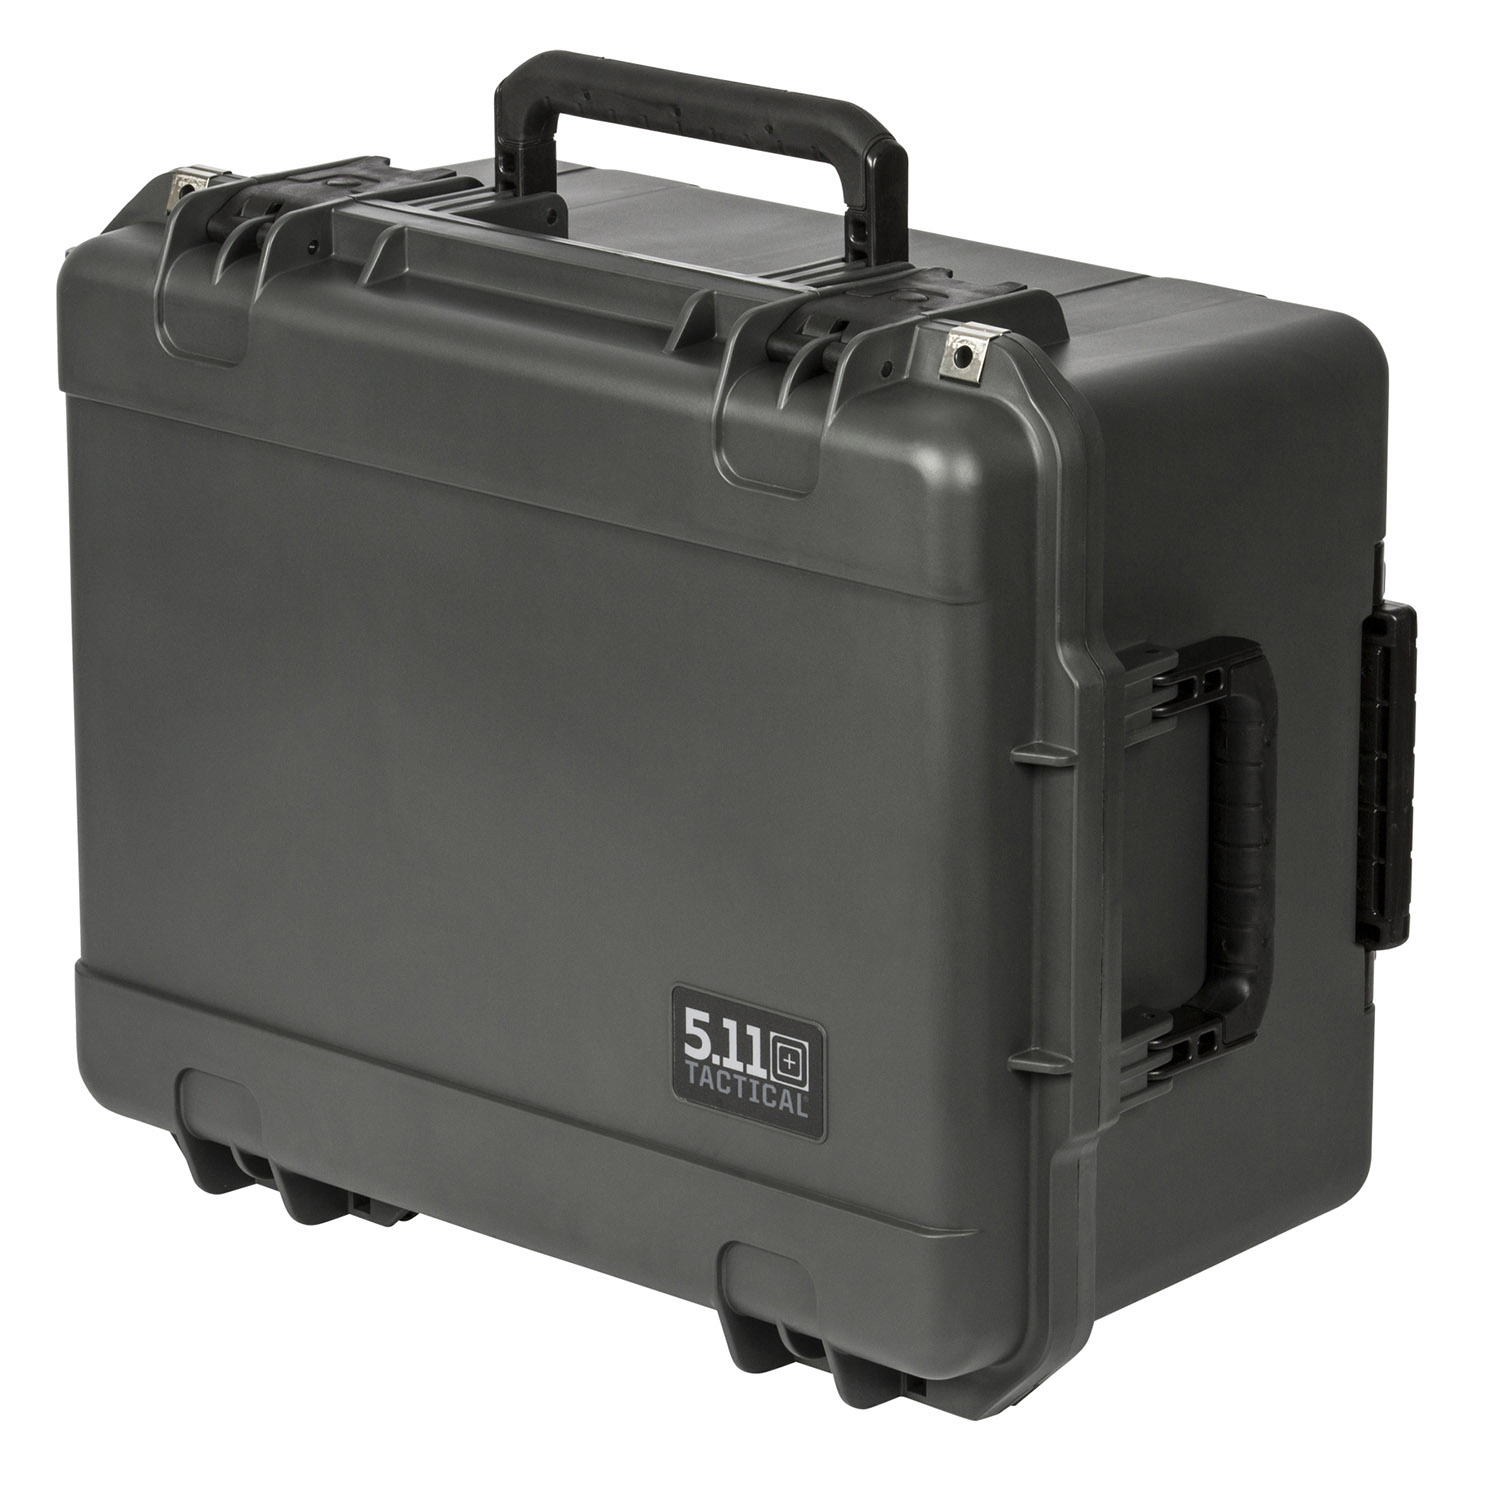 5.11 Tactical Hard Case 3180